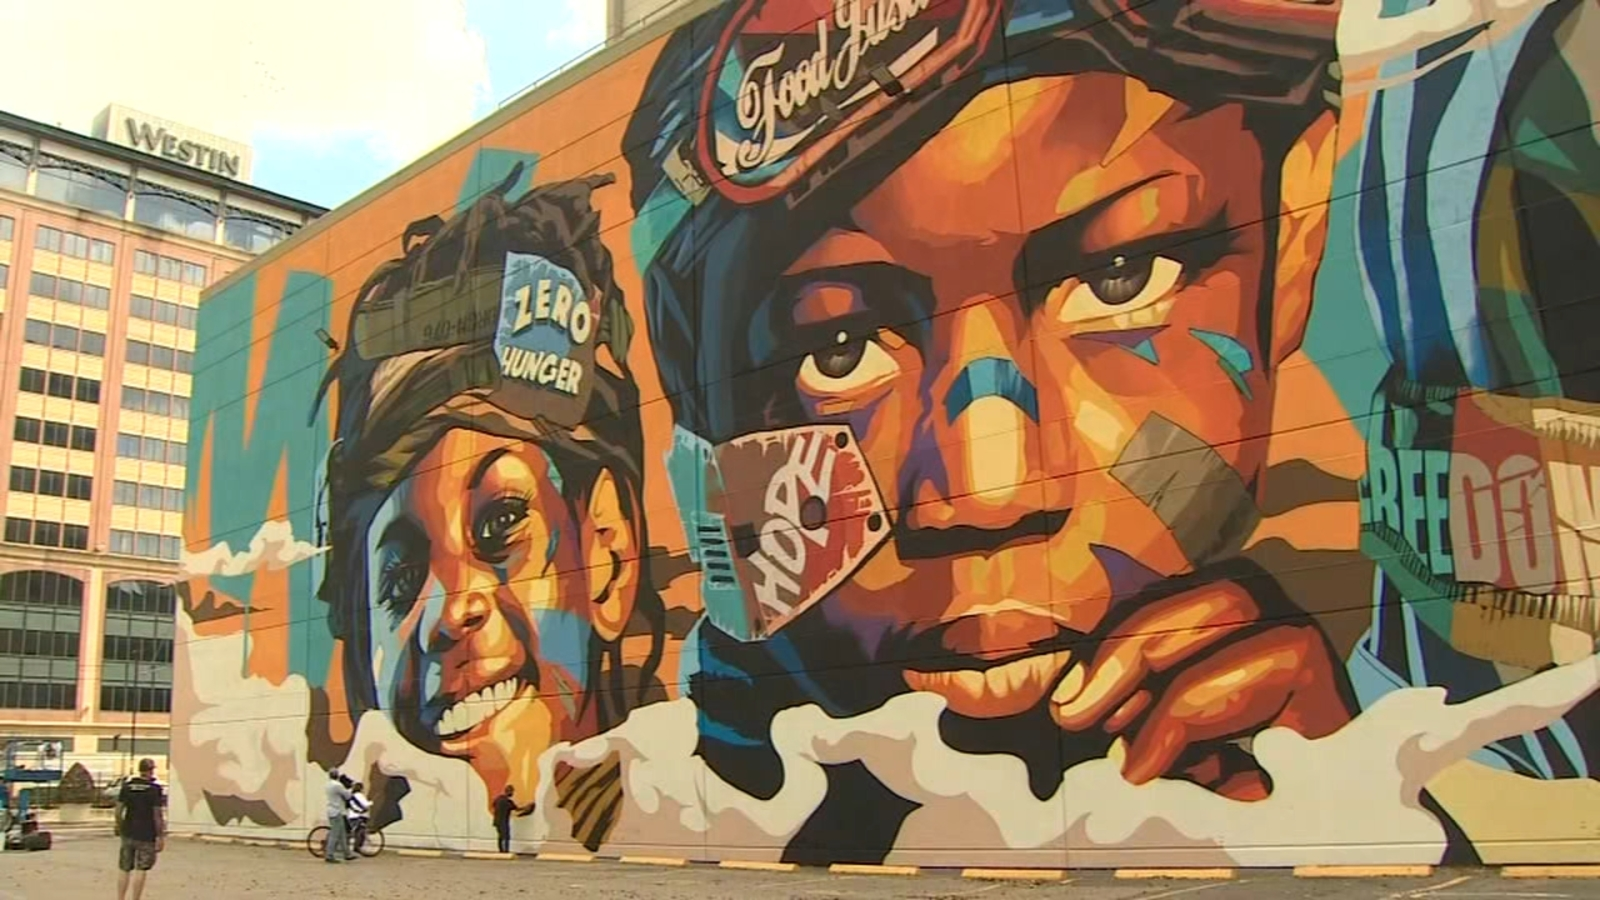 Houston's 'ZERO HUNGER' mural is largest in city, highlights poverty problem